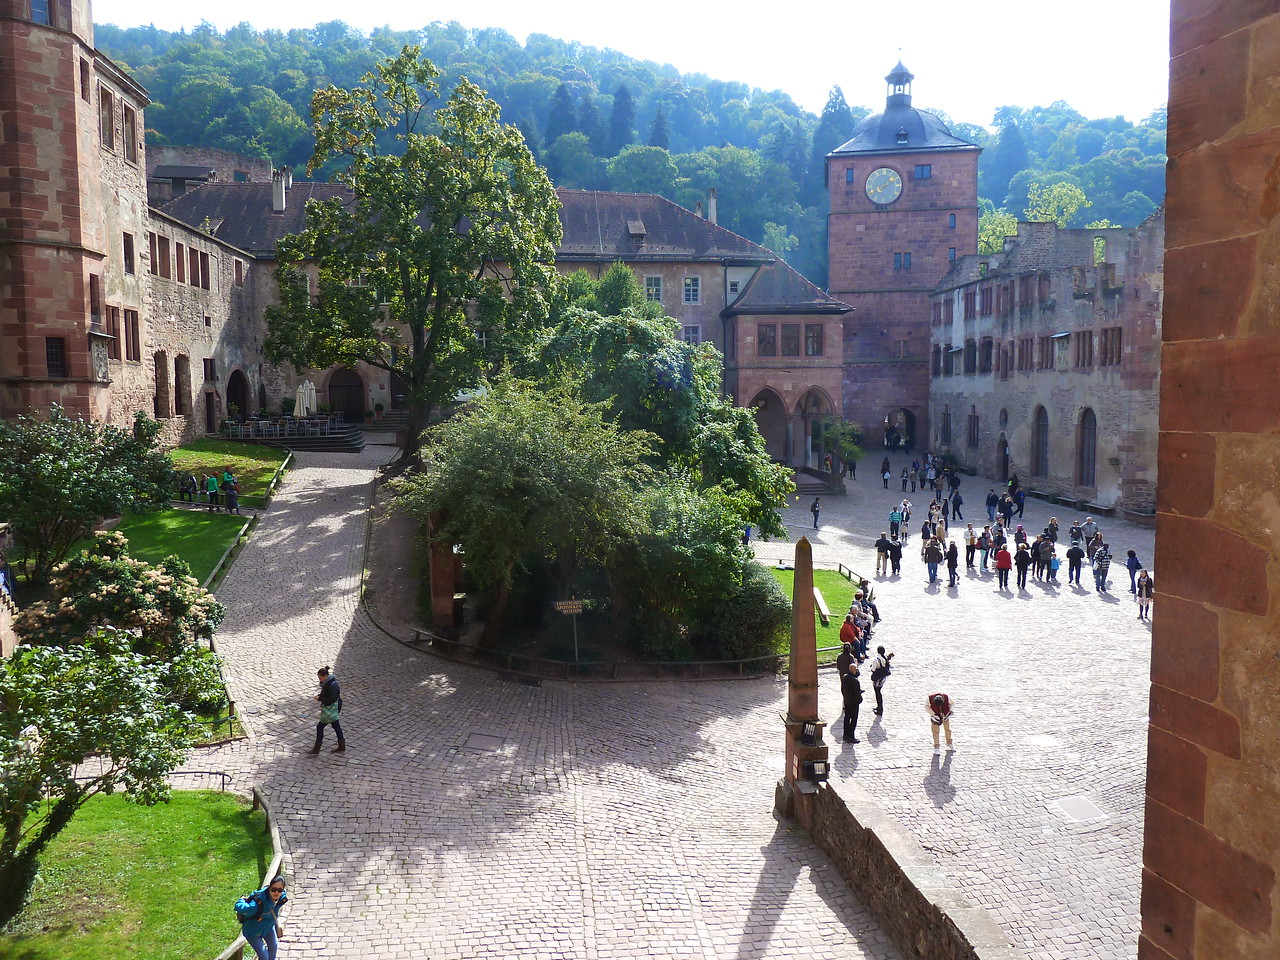 The inner courtyard of the castle!